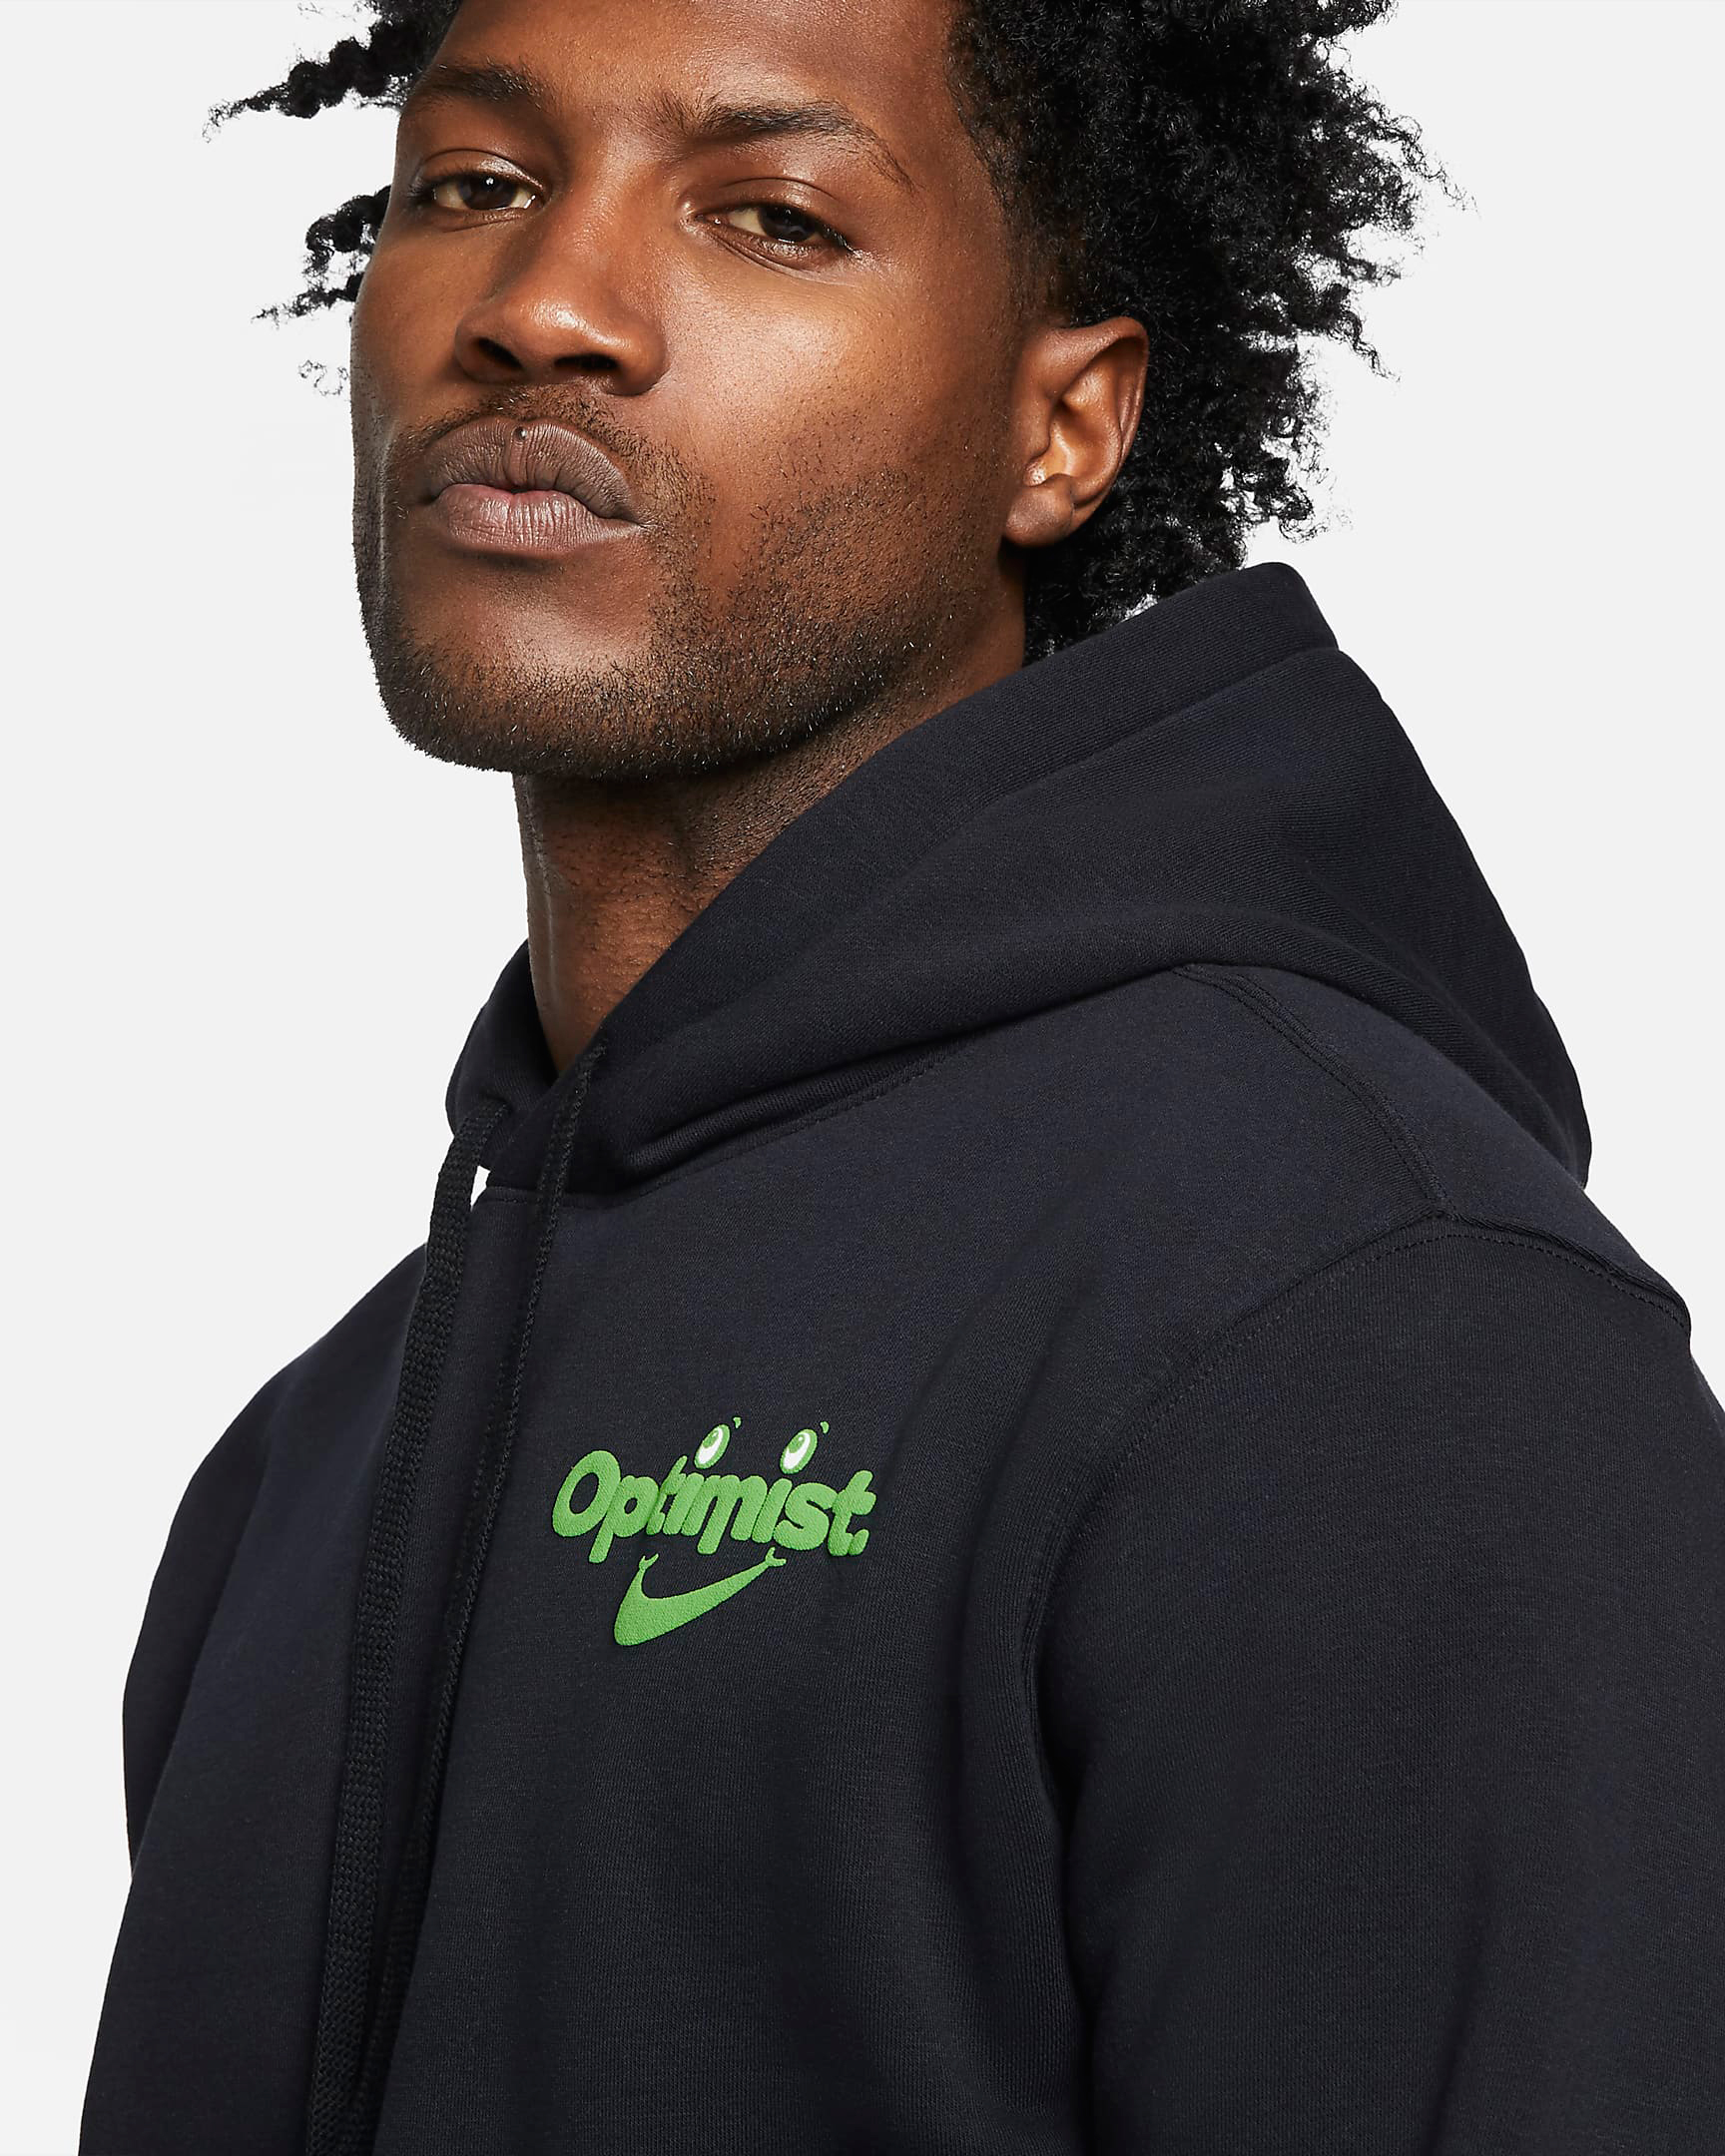 nike-sportswear-optimist-hoodie-black-green-2